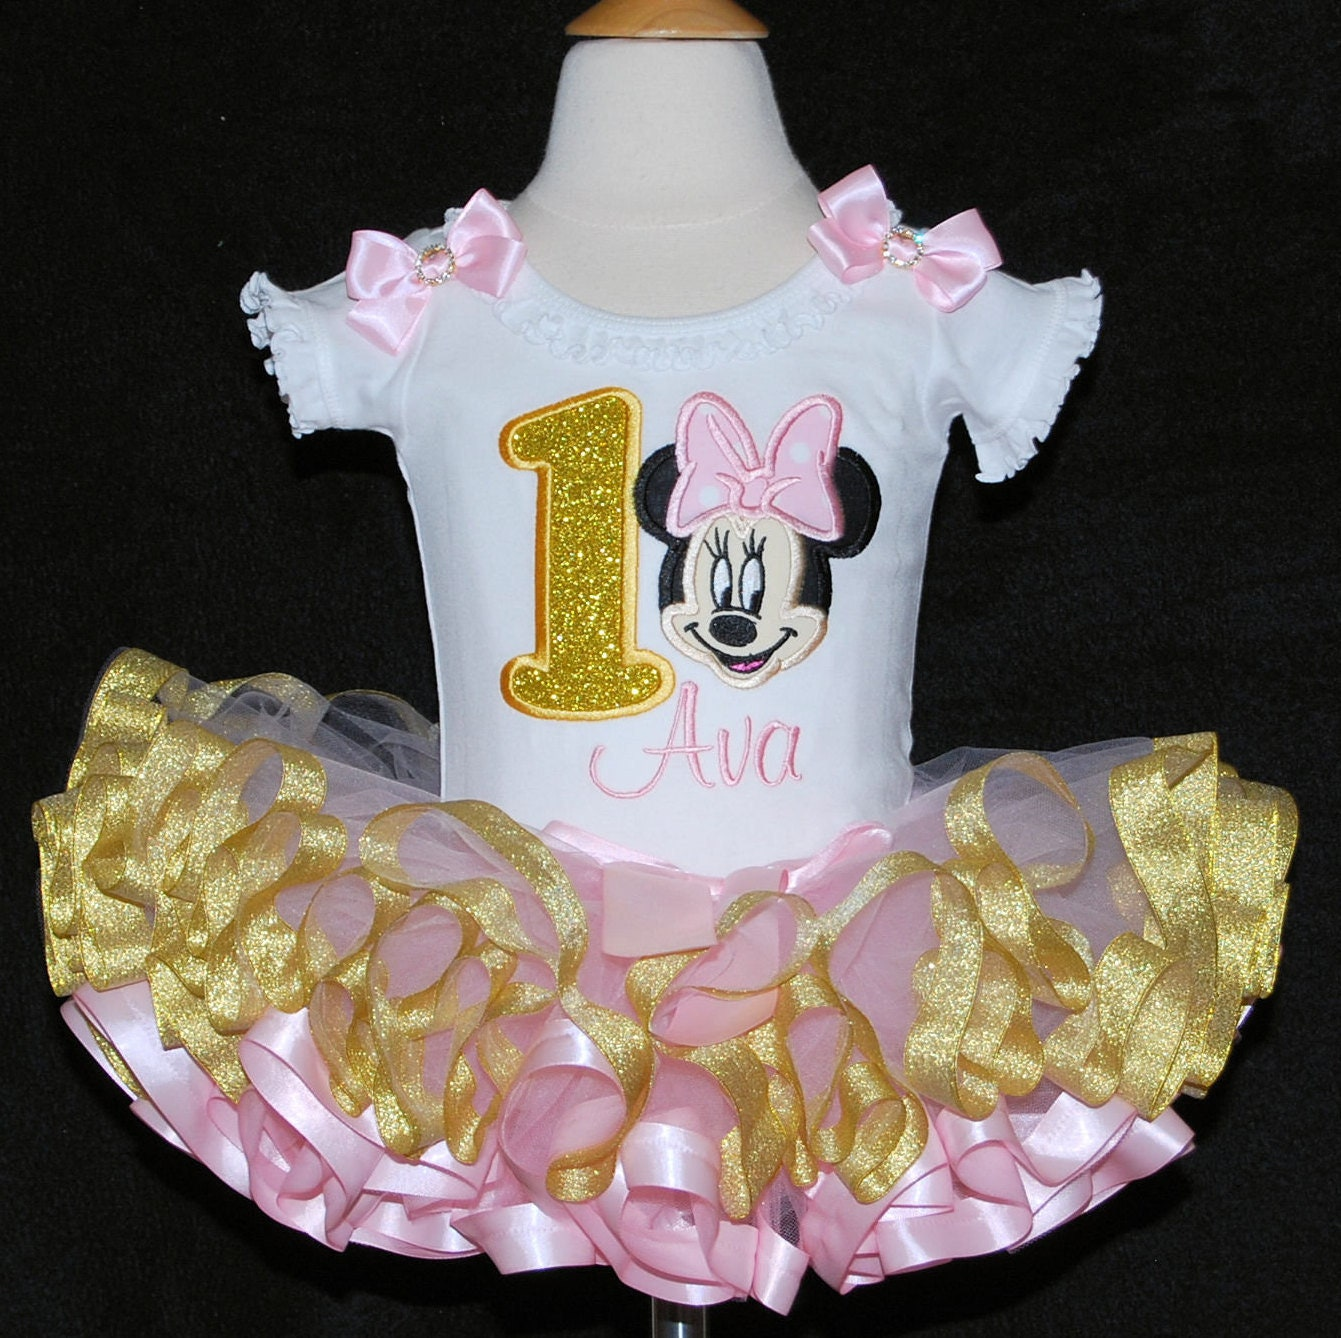 minnie mouse birthday outfit, minnie mouse 1st birthday outfit, minnie mouse 2nd birthday dress, 2nd birthday girl outfit, personalized